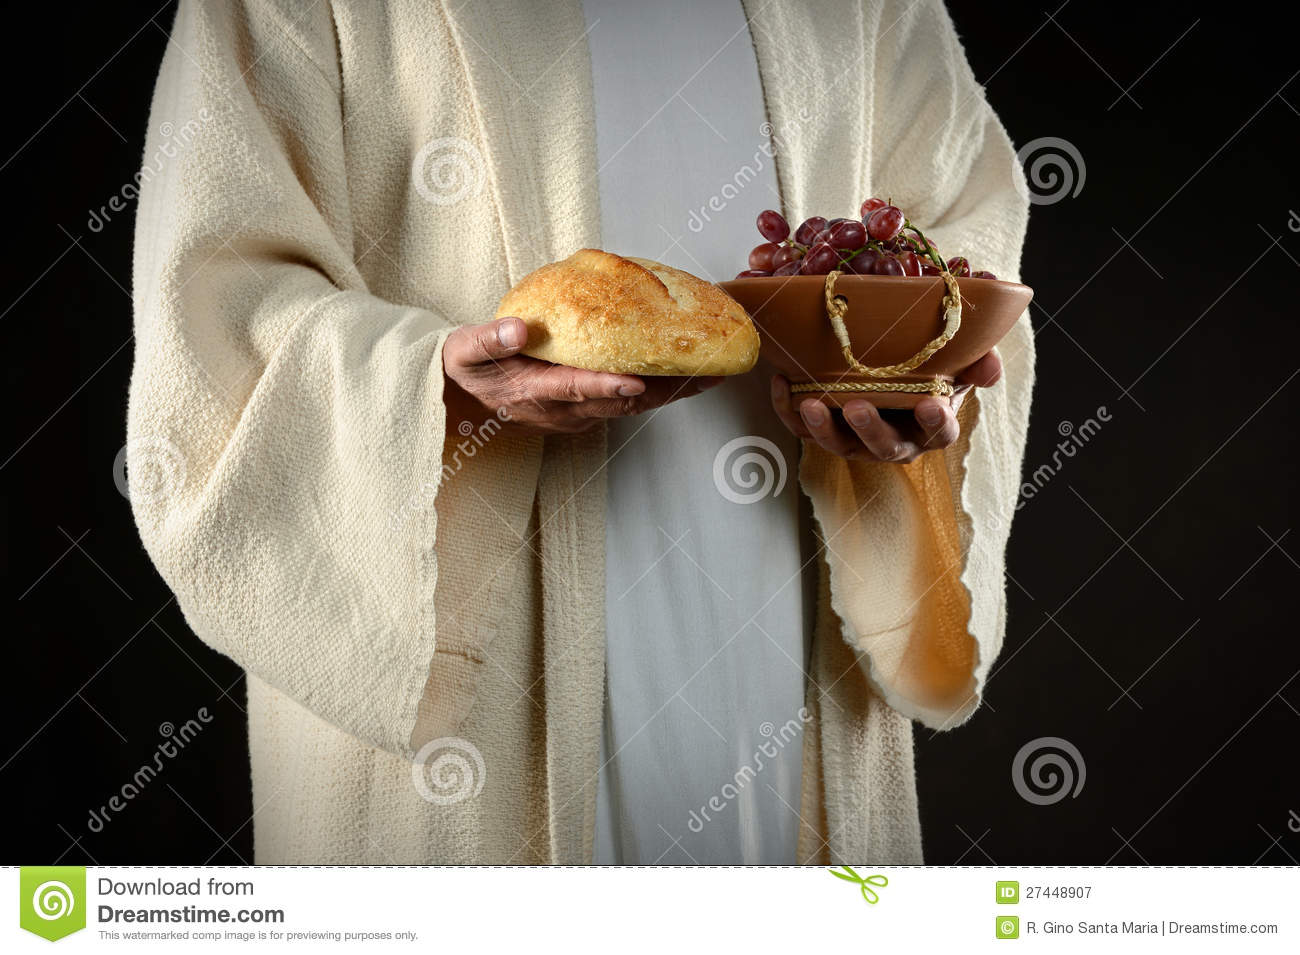 Jesus Hands Holding Bread and Grapes